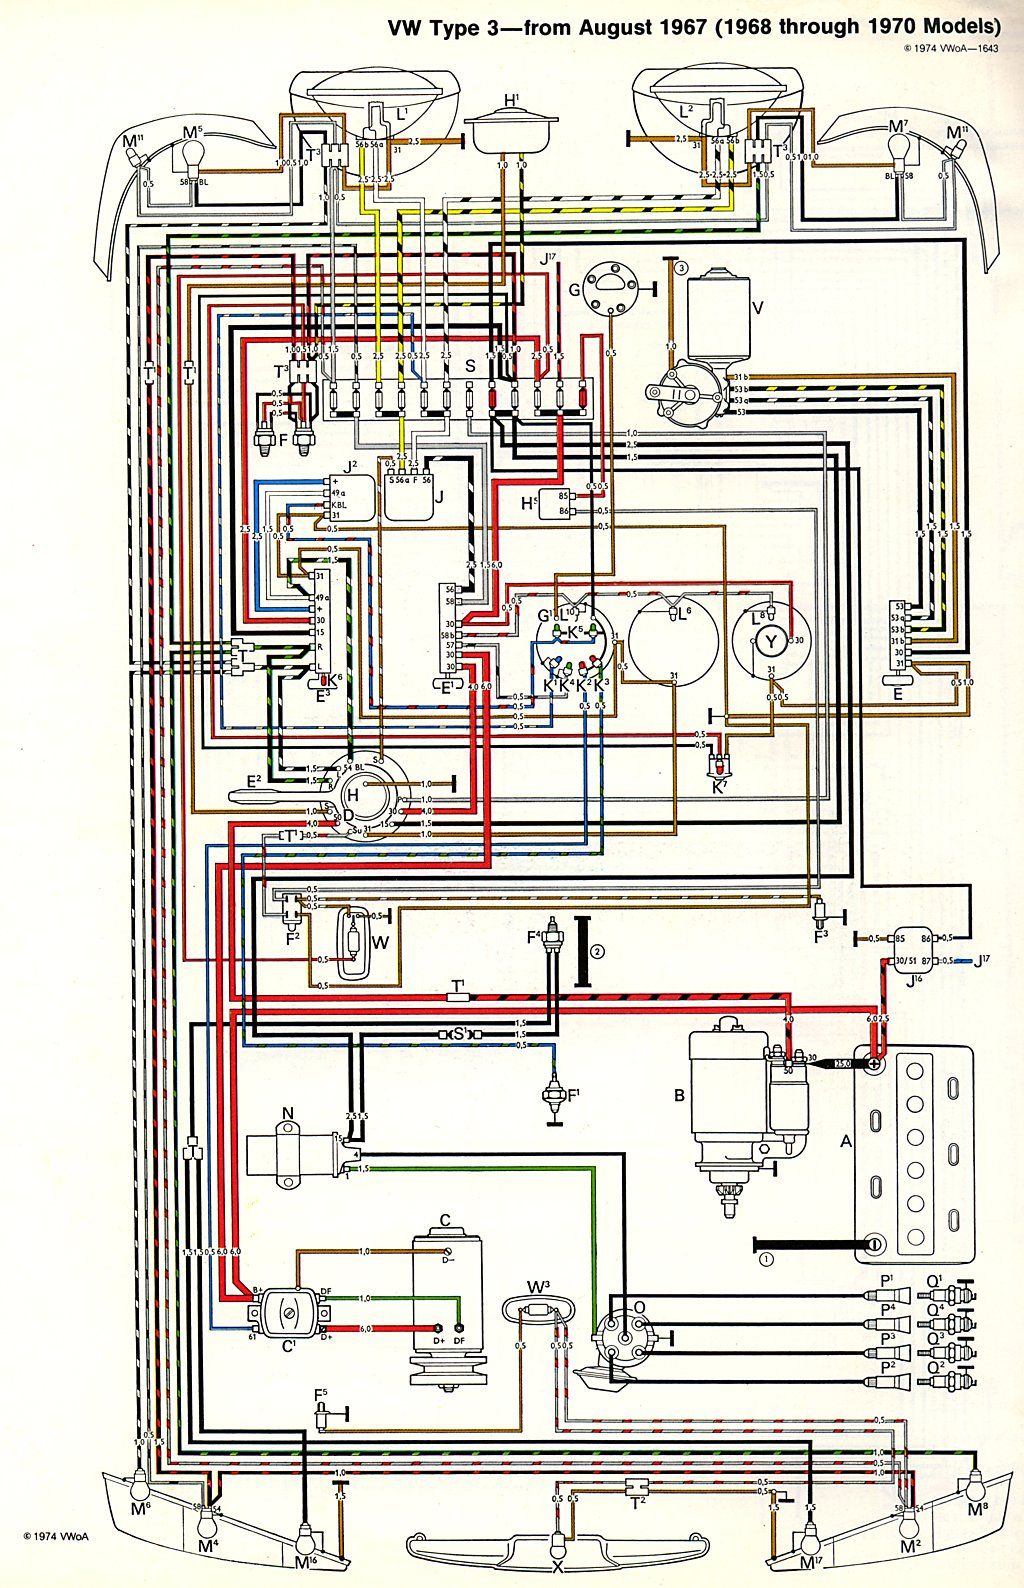 type3_6870 vw type 3 wiring diagram vw wiring diagrams free downloads \u2022 free vw type 3 wiring harness at aneh.co